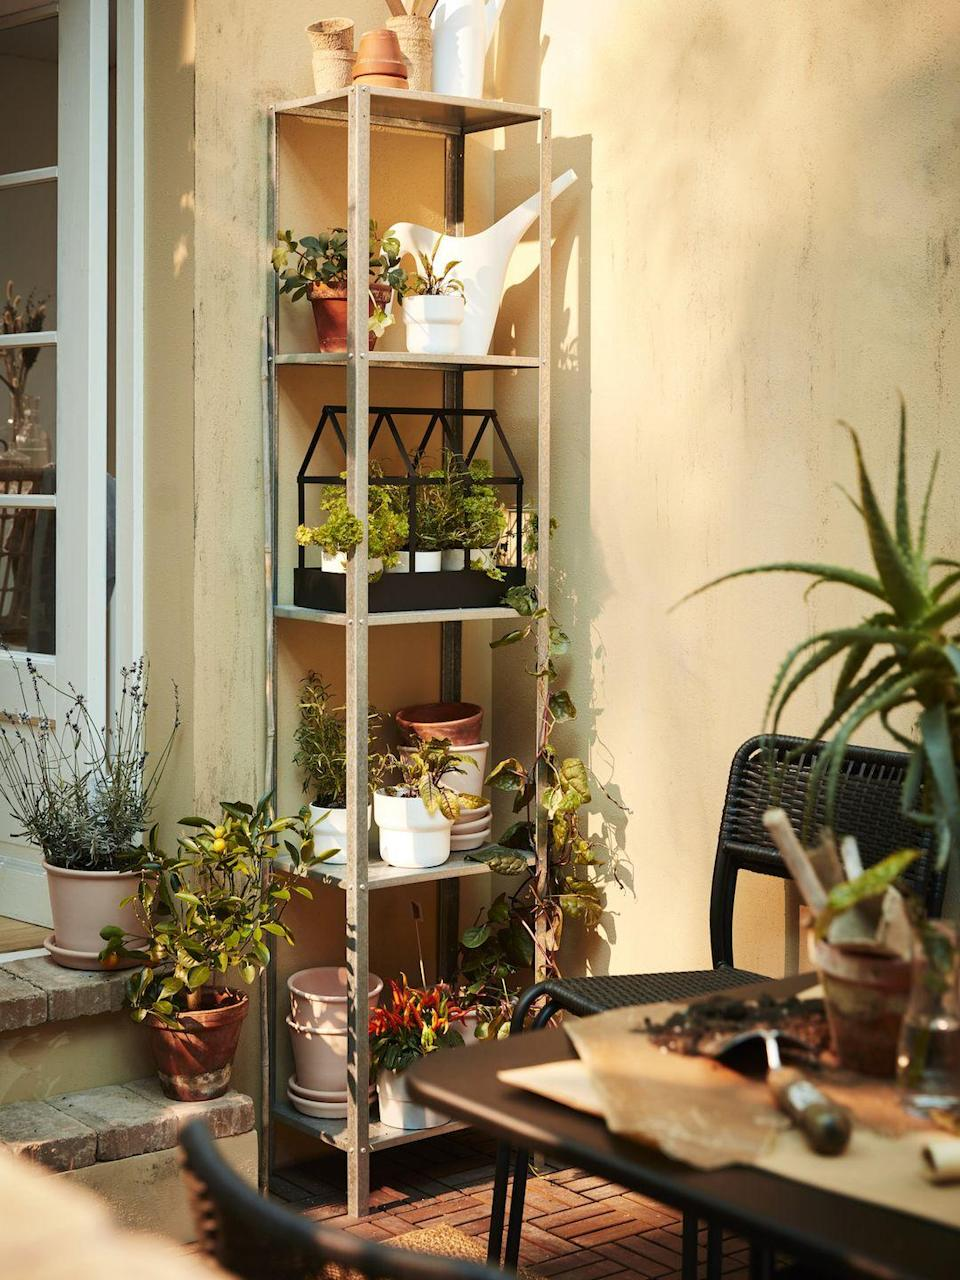 """<p>With more city-dwellers looking for smart ways to embrace <a href=""""https://www.countryliving.com/uk/wellbeing/a35160128/head-outdoors-beat-lockdown-blues/"""" rel=""""nofollow noopener"""" target=""""_blank"""" data-ylk=""""slk:nature"""" class=""""link rapid-noclick-resp"""">nature</a>, balcony gardening is set to be on the rise in 2021 — and IKEA is here to help. From outdoor shelving units to plants and compact furniture, you'll find all you need to refresh your space for less. </p><p><strong>READ MORE</strong>: <a href=""""https://www.countryliving.com/uk/homes-interiors/gardens/a33963652/garden-trends-2021/"""" rel=""""nofollow noopener"""" target=""""_blank"""" data-ylk=""""slk:10 gardening trends predicted to be huge in 2021"""" class=""""link rapid-noclick-resp"""">10 gardening trends predicted to be huge in 2021</a></p>"""